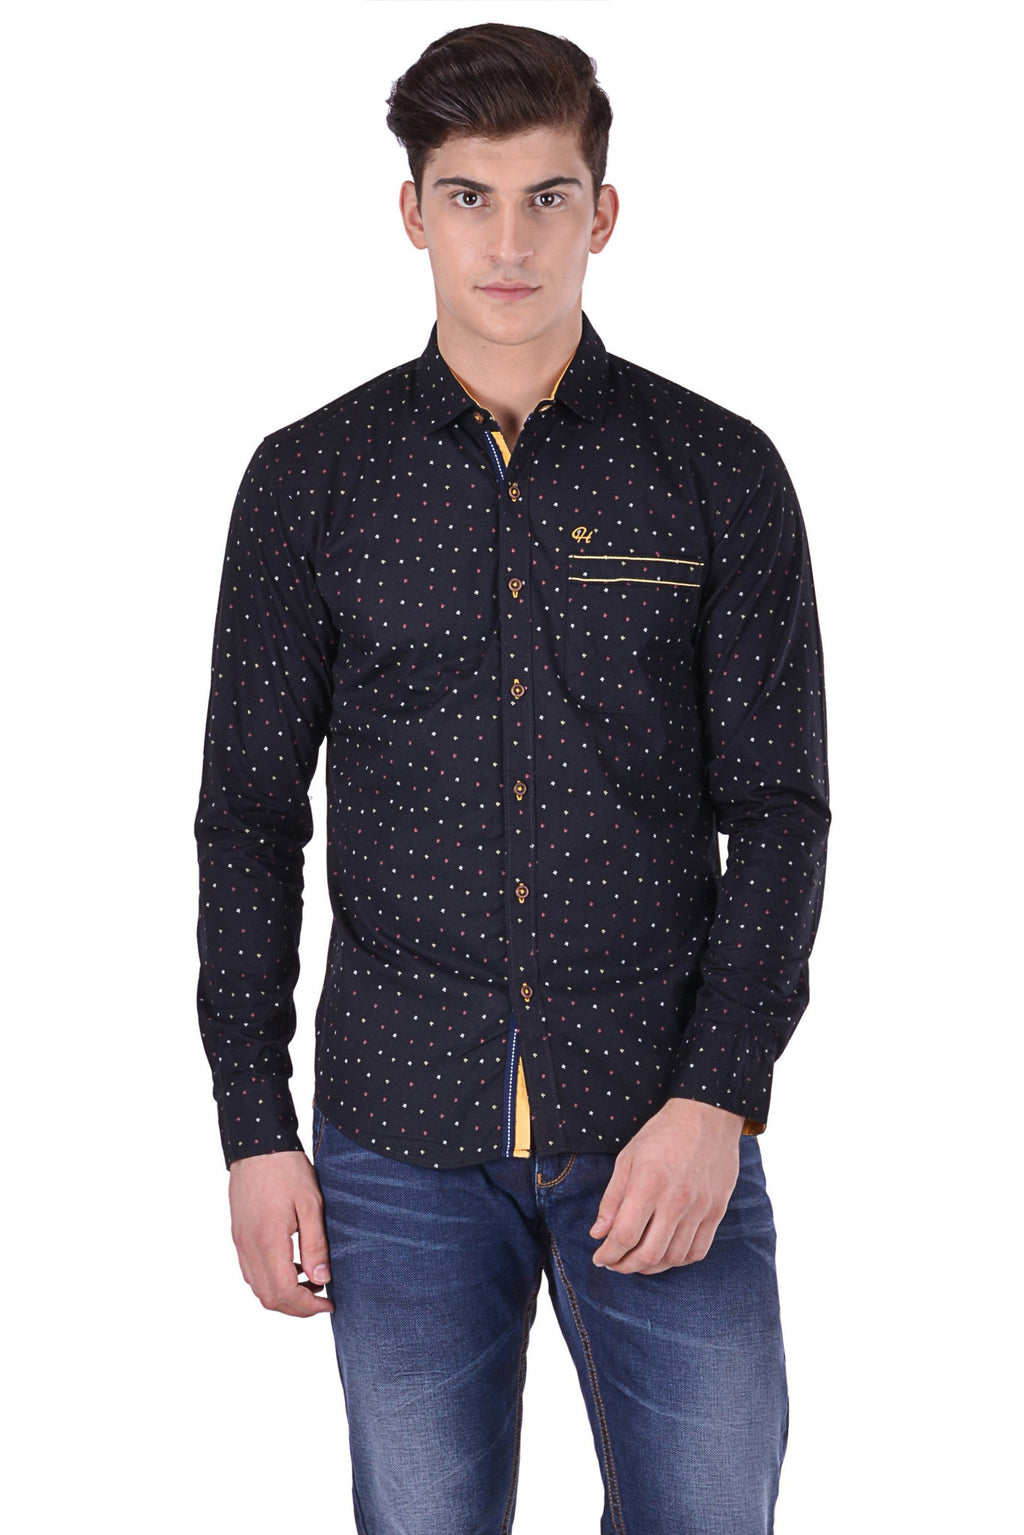 Hoffmen Men's Casual Shirt CR6068